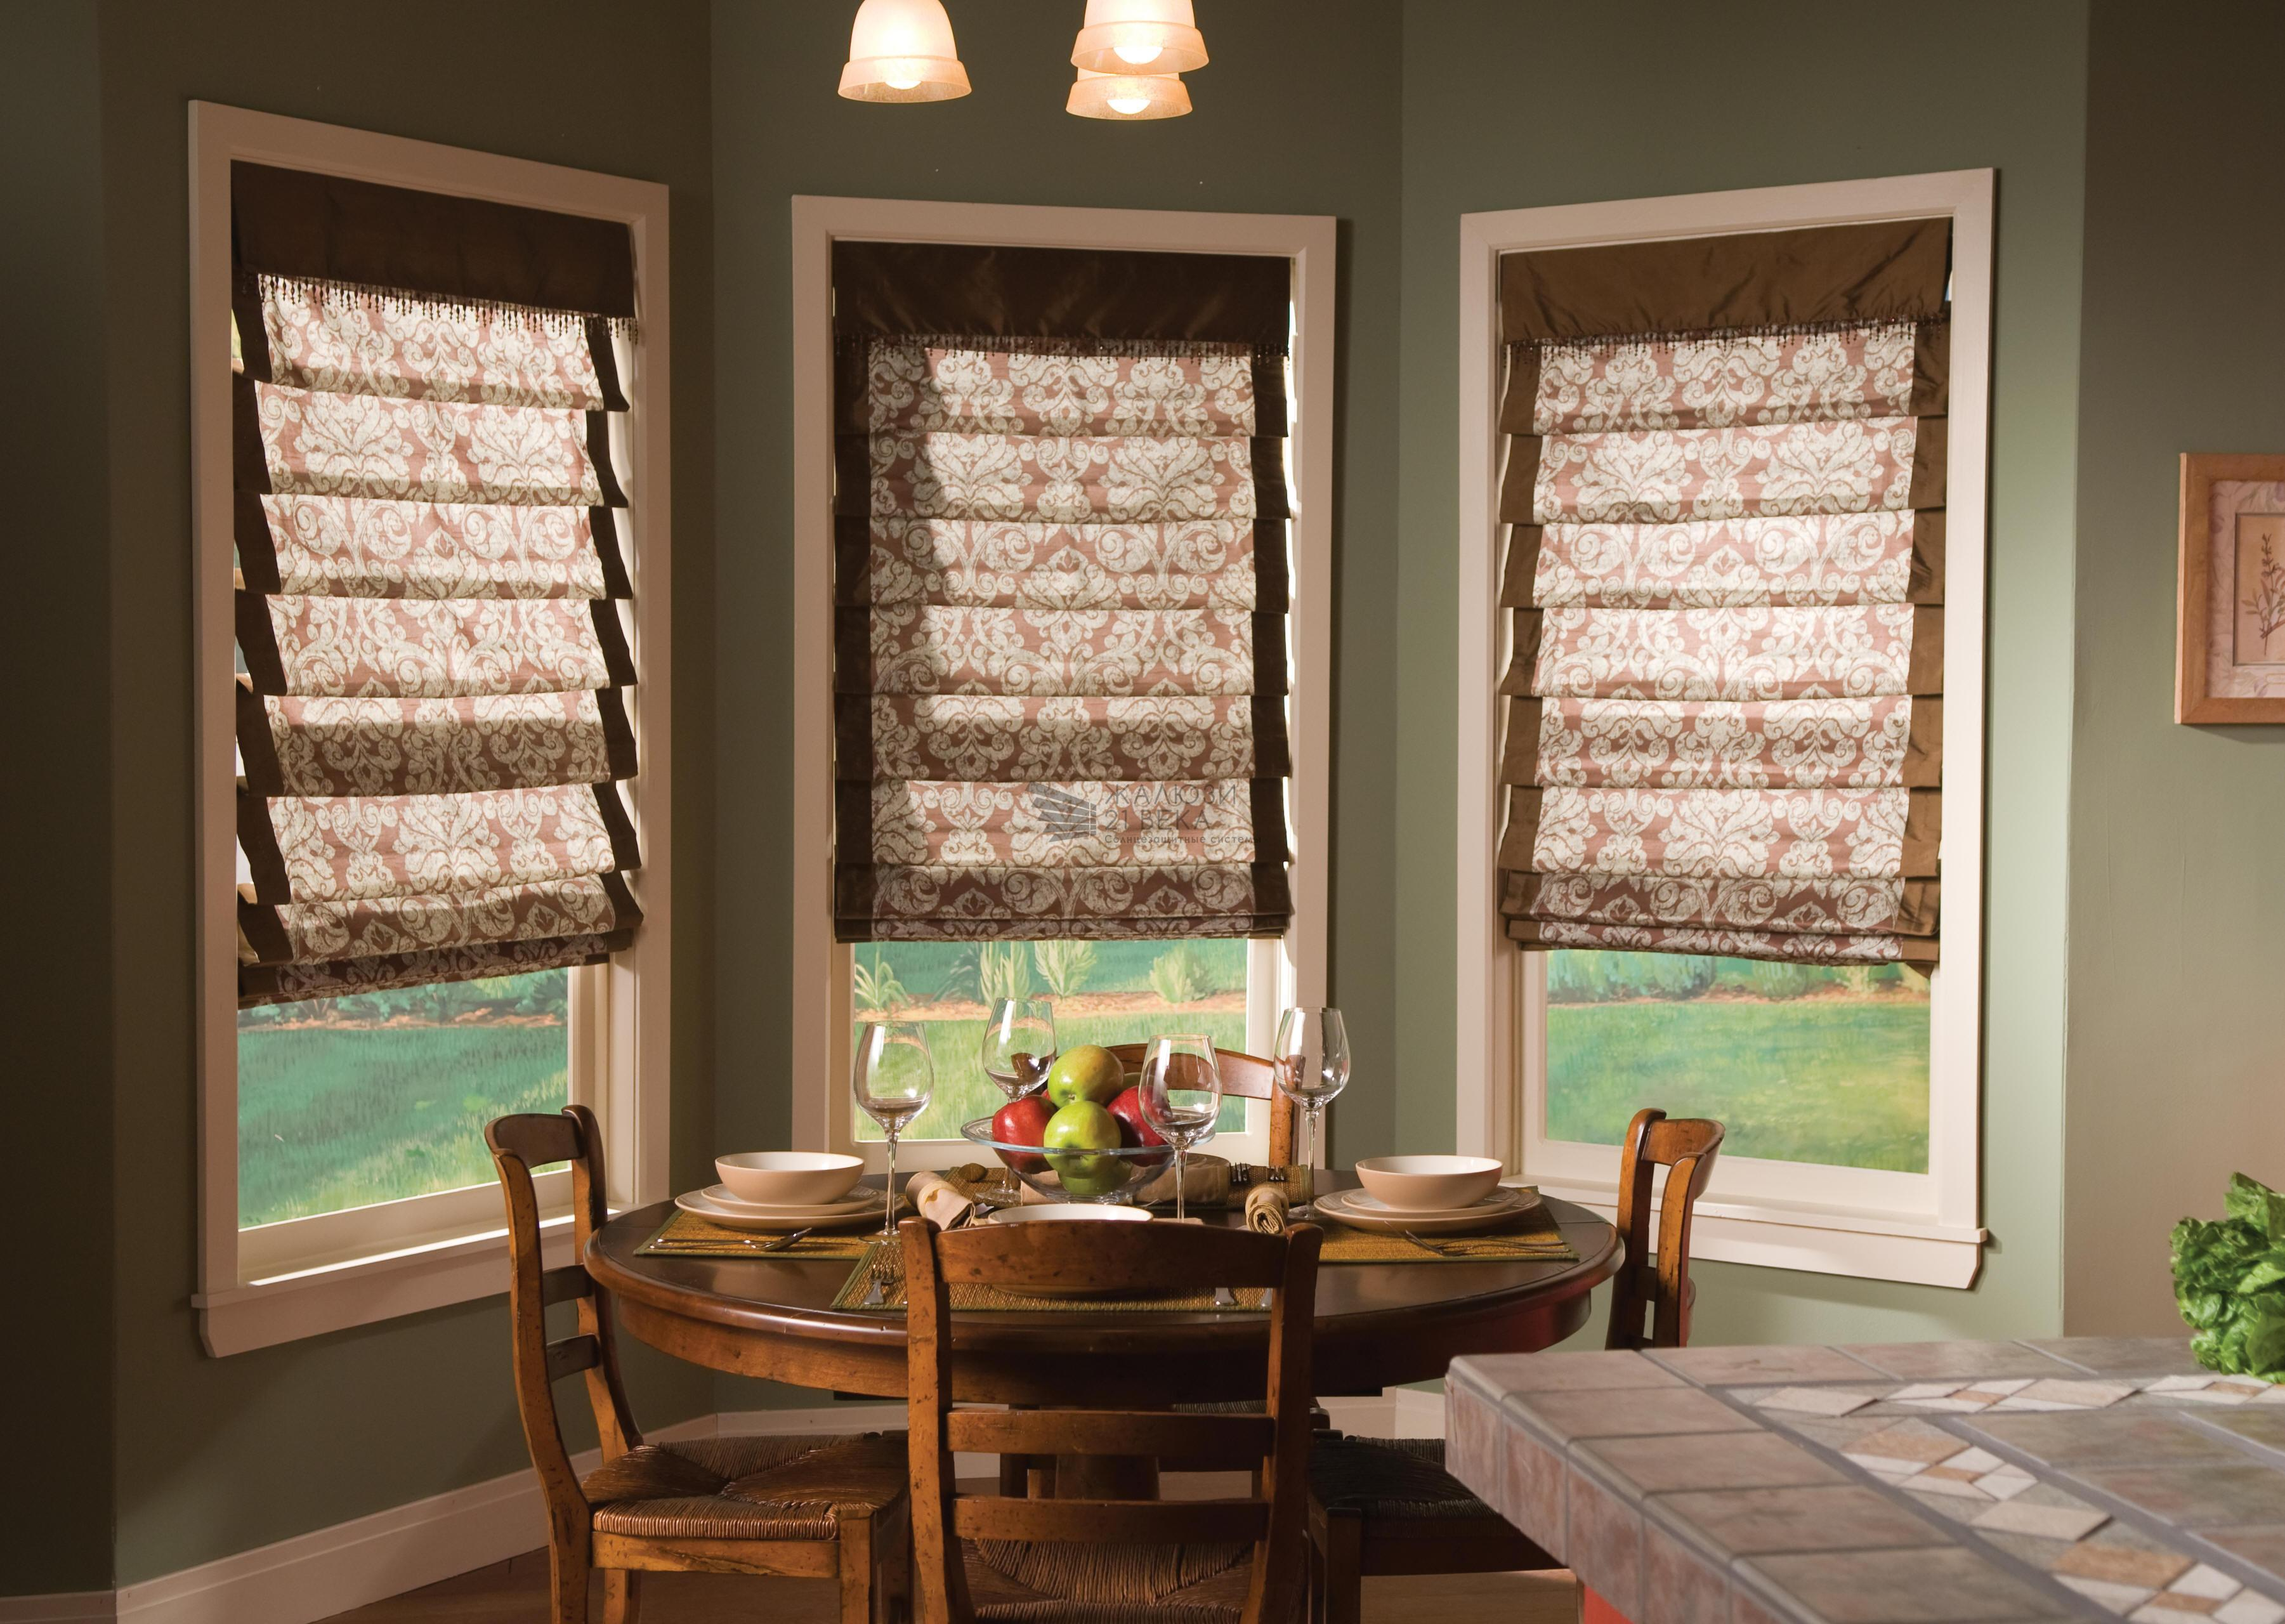 astounding-picture-of-bay-window-design-with-white-wooden-sash-frames-covering-motive-fabric-blinds-also-rounded-dining-table-unify-stylish-ch